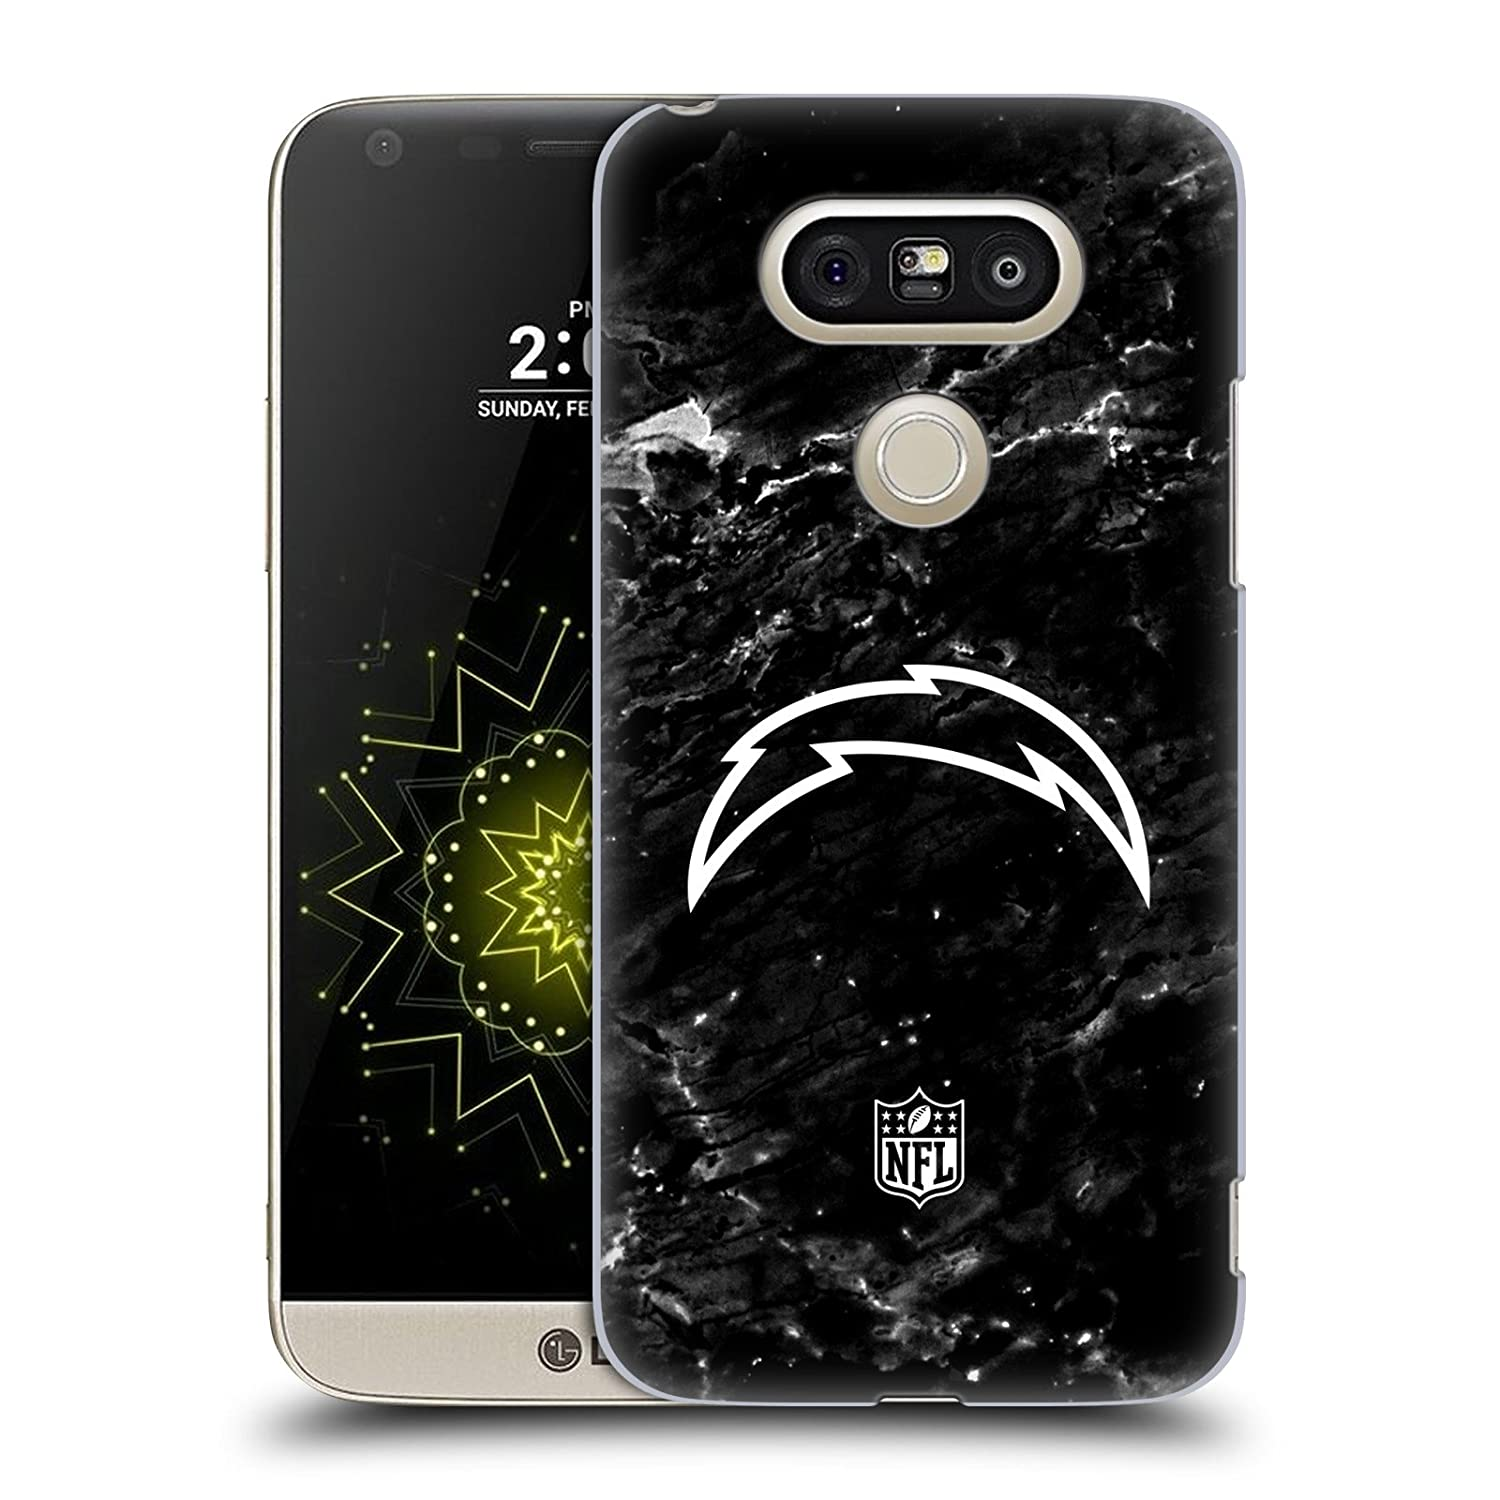 Ufficiale NFL Marmo 2017/18 Los Angeles Chargers Cover Retro Rigida per LG X Power Head Case Designs HC-XPOWER-NFLLOSDC2-MAR